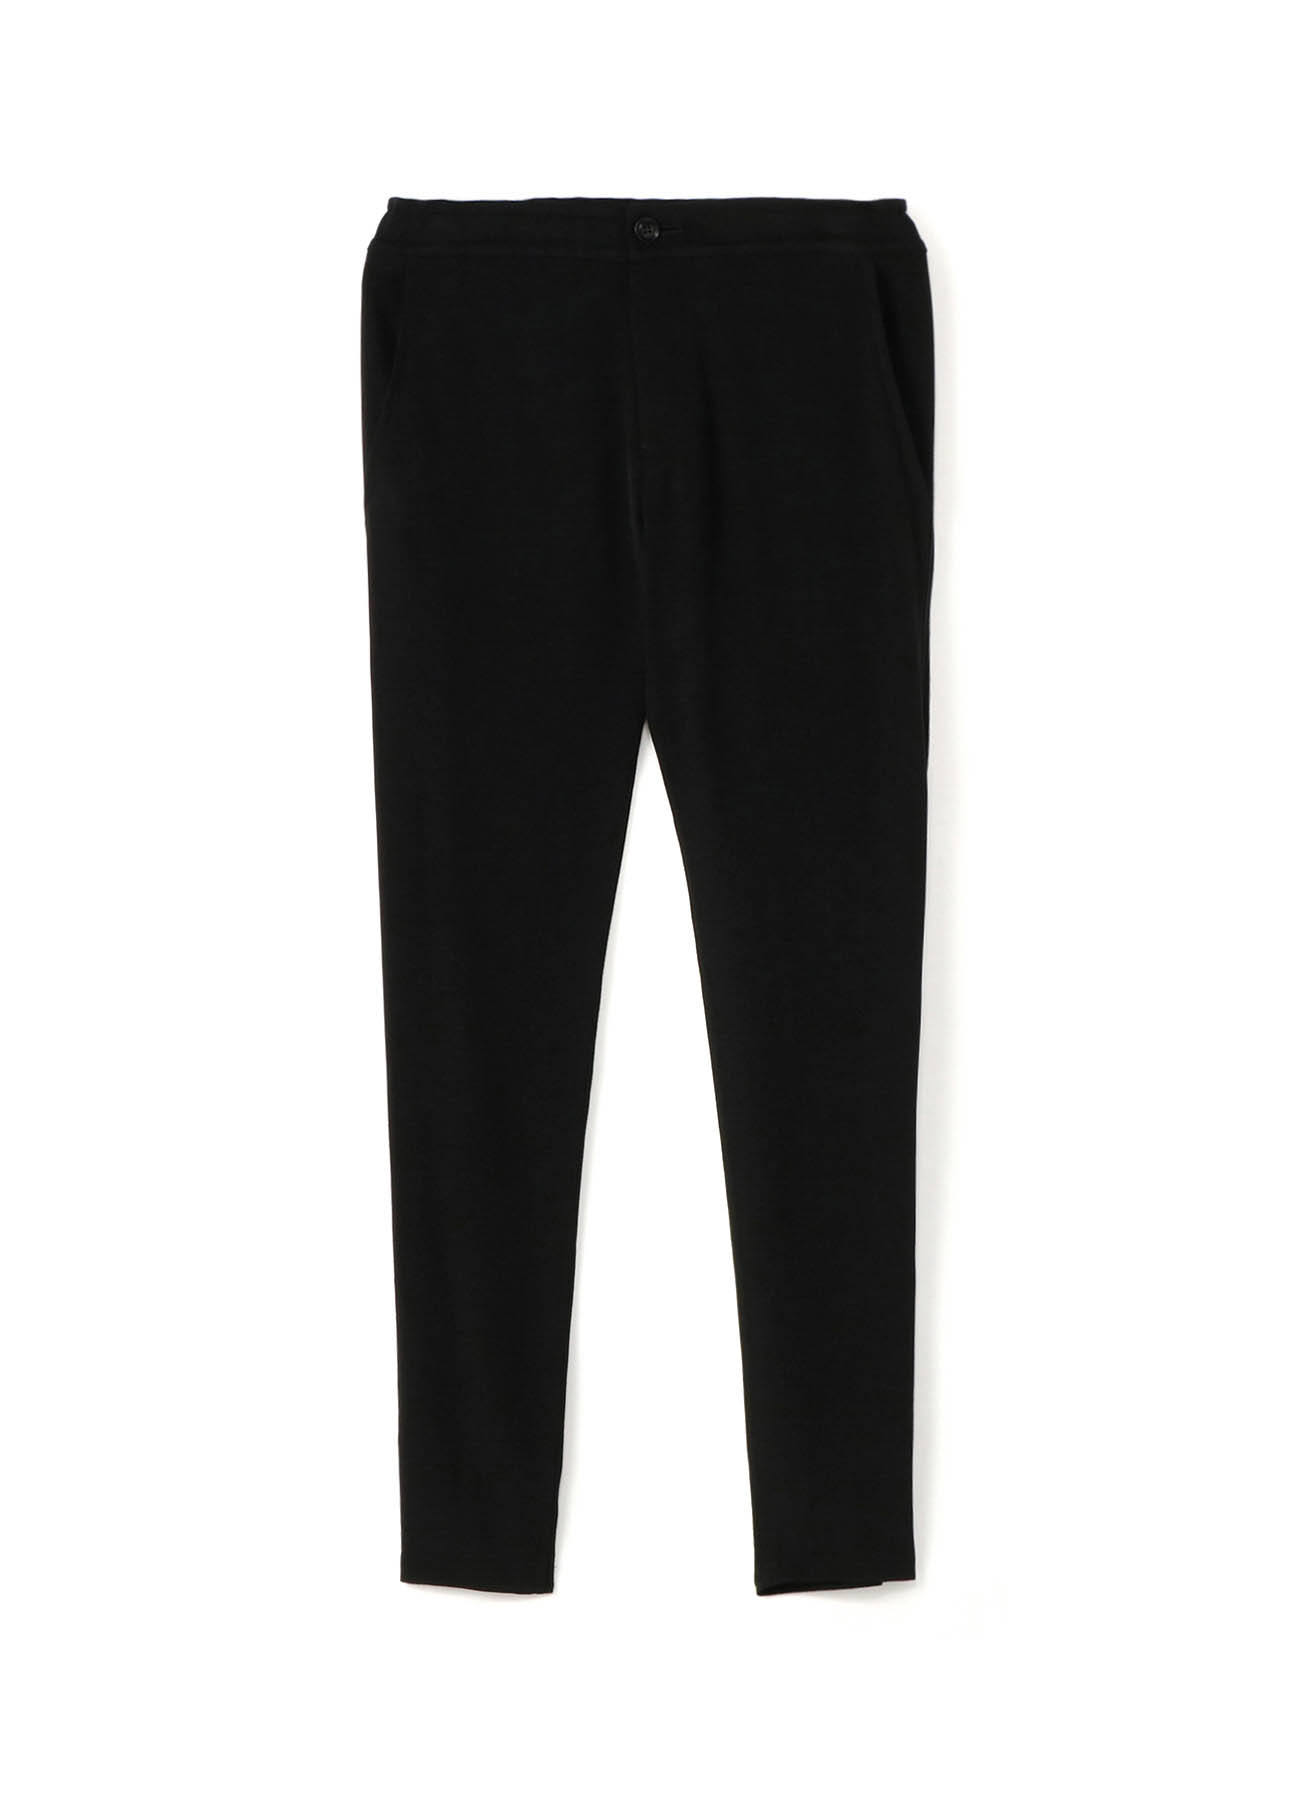 DECYN SLIT GATHER PANTS